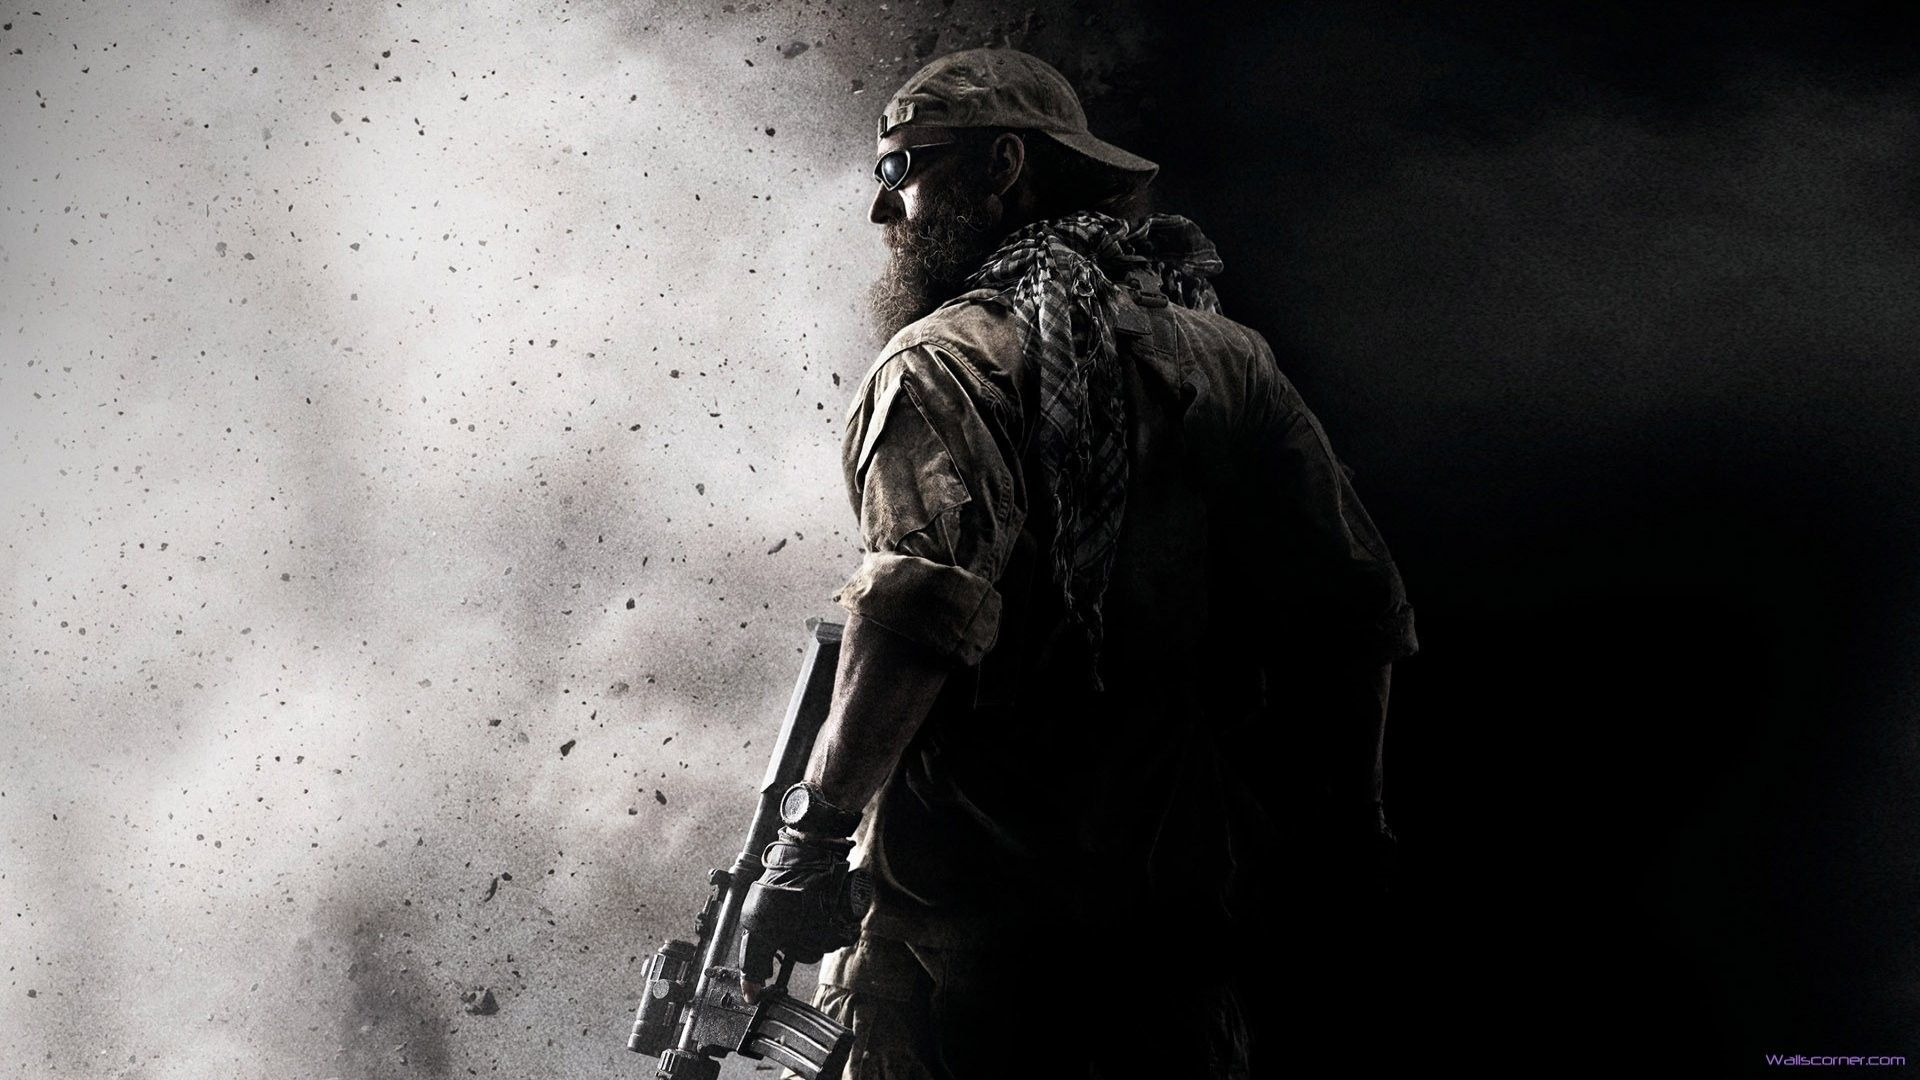 A Collection Of 354 Gaming Wallpapers All 1080p Best Gaming Wallpapers Gaming Wallpapers Hd Gaming Wallpapers